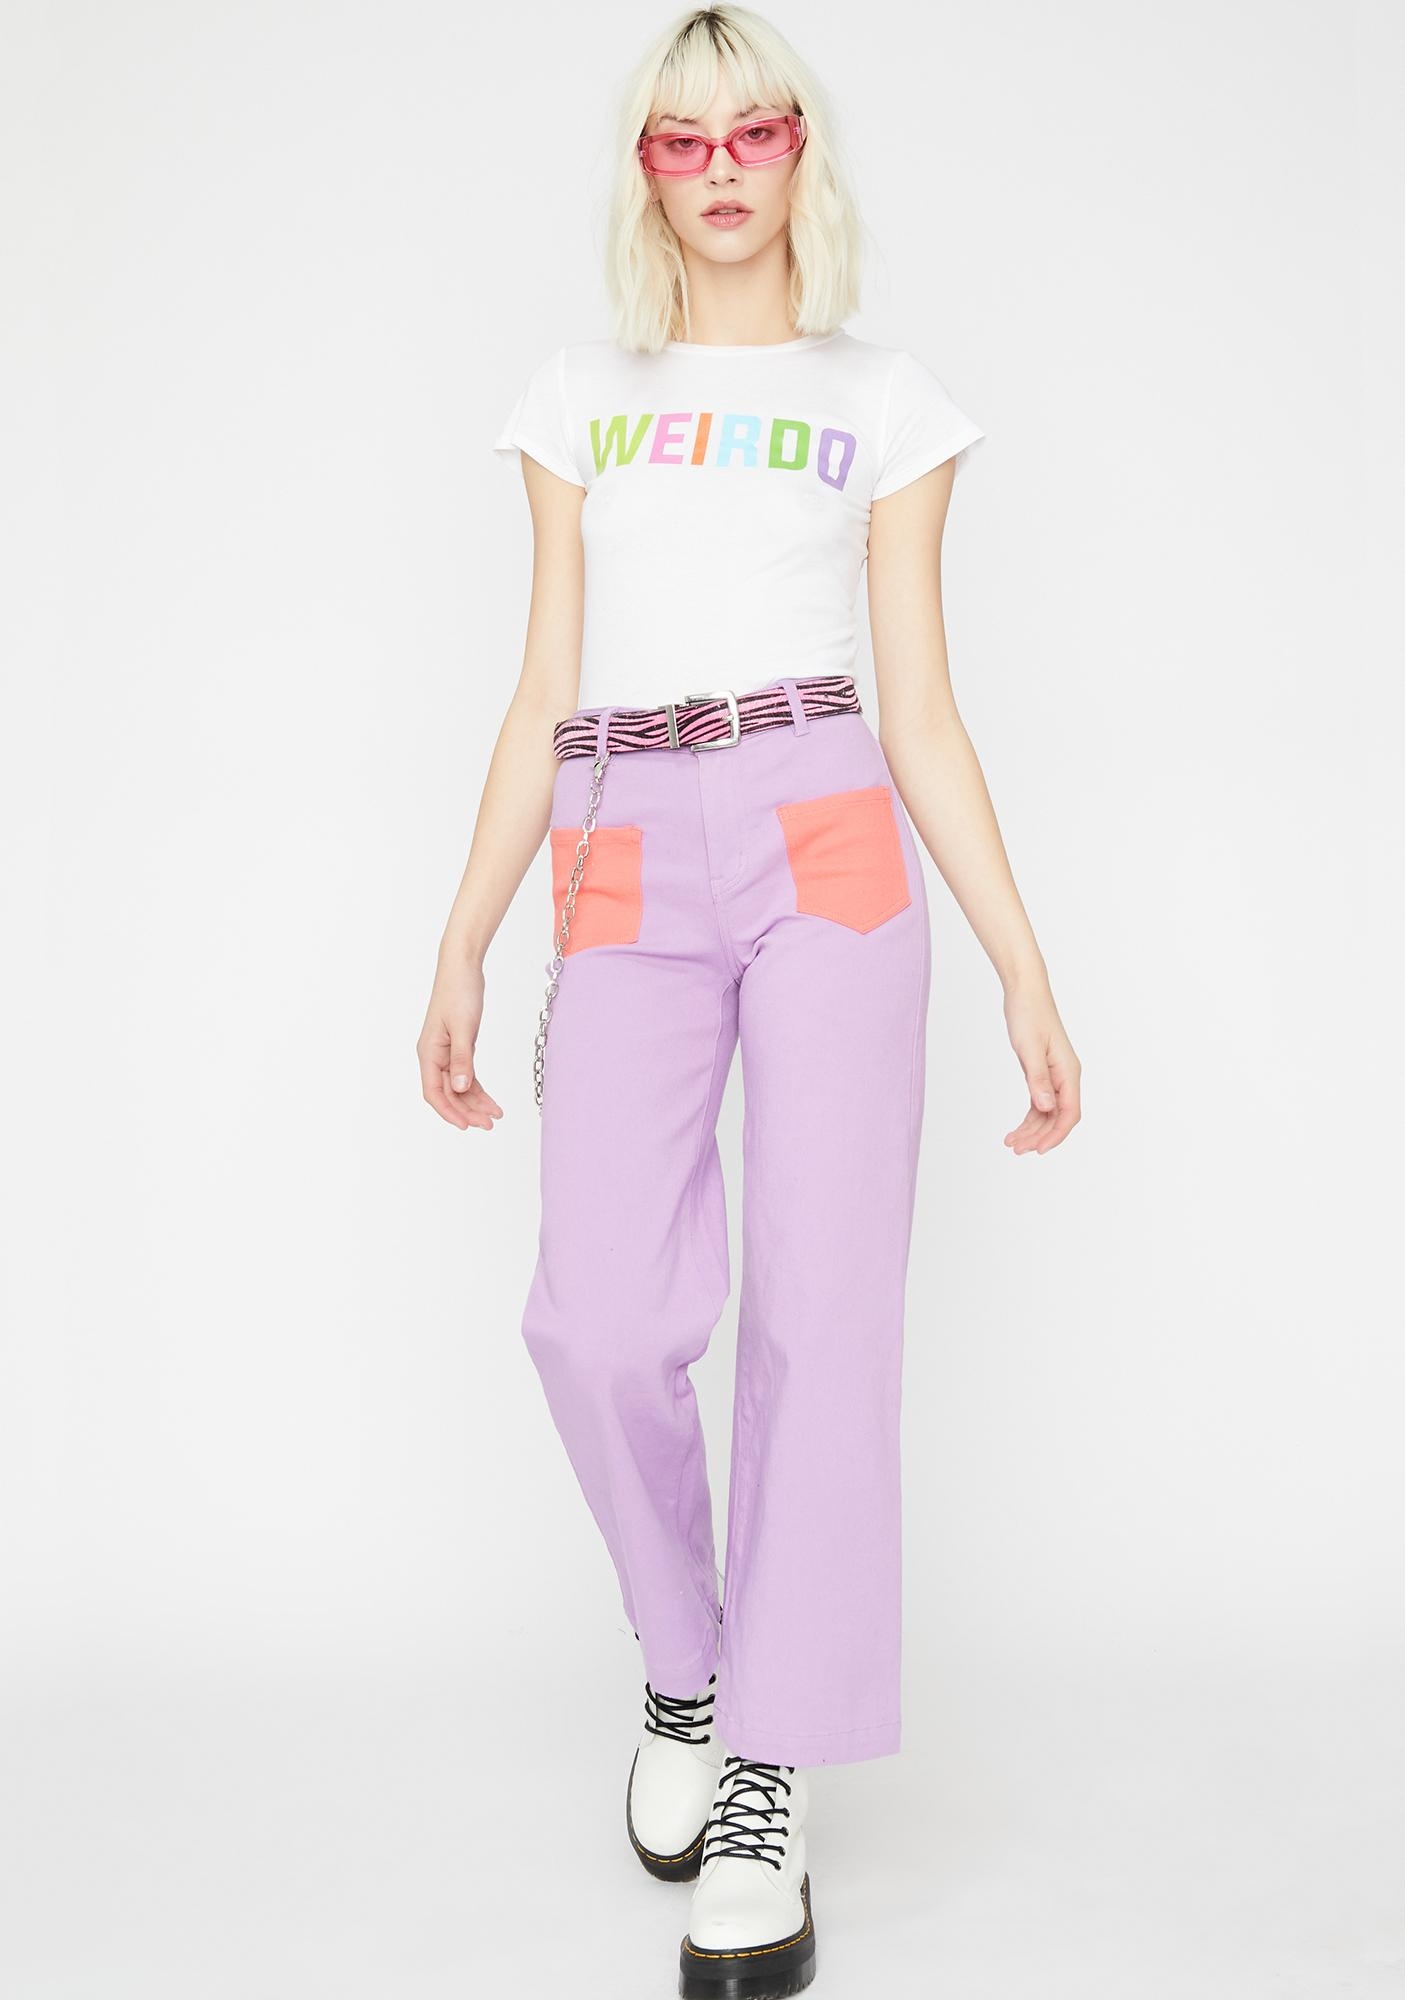 Weirdo Gang Cropped Tee